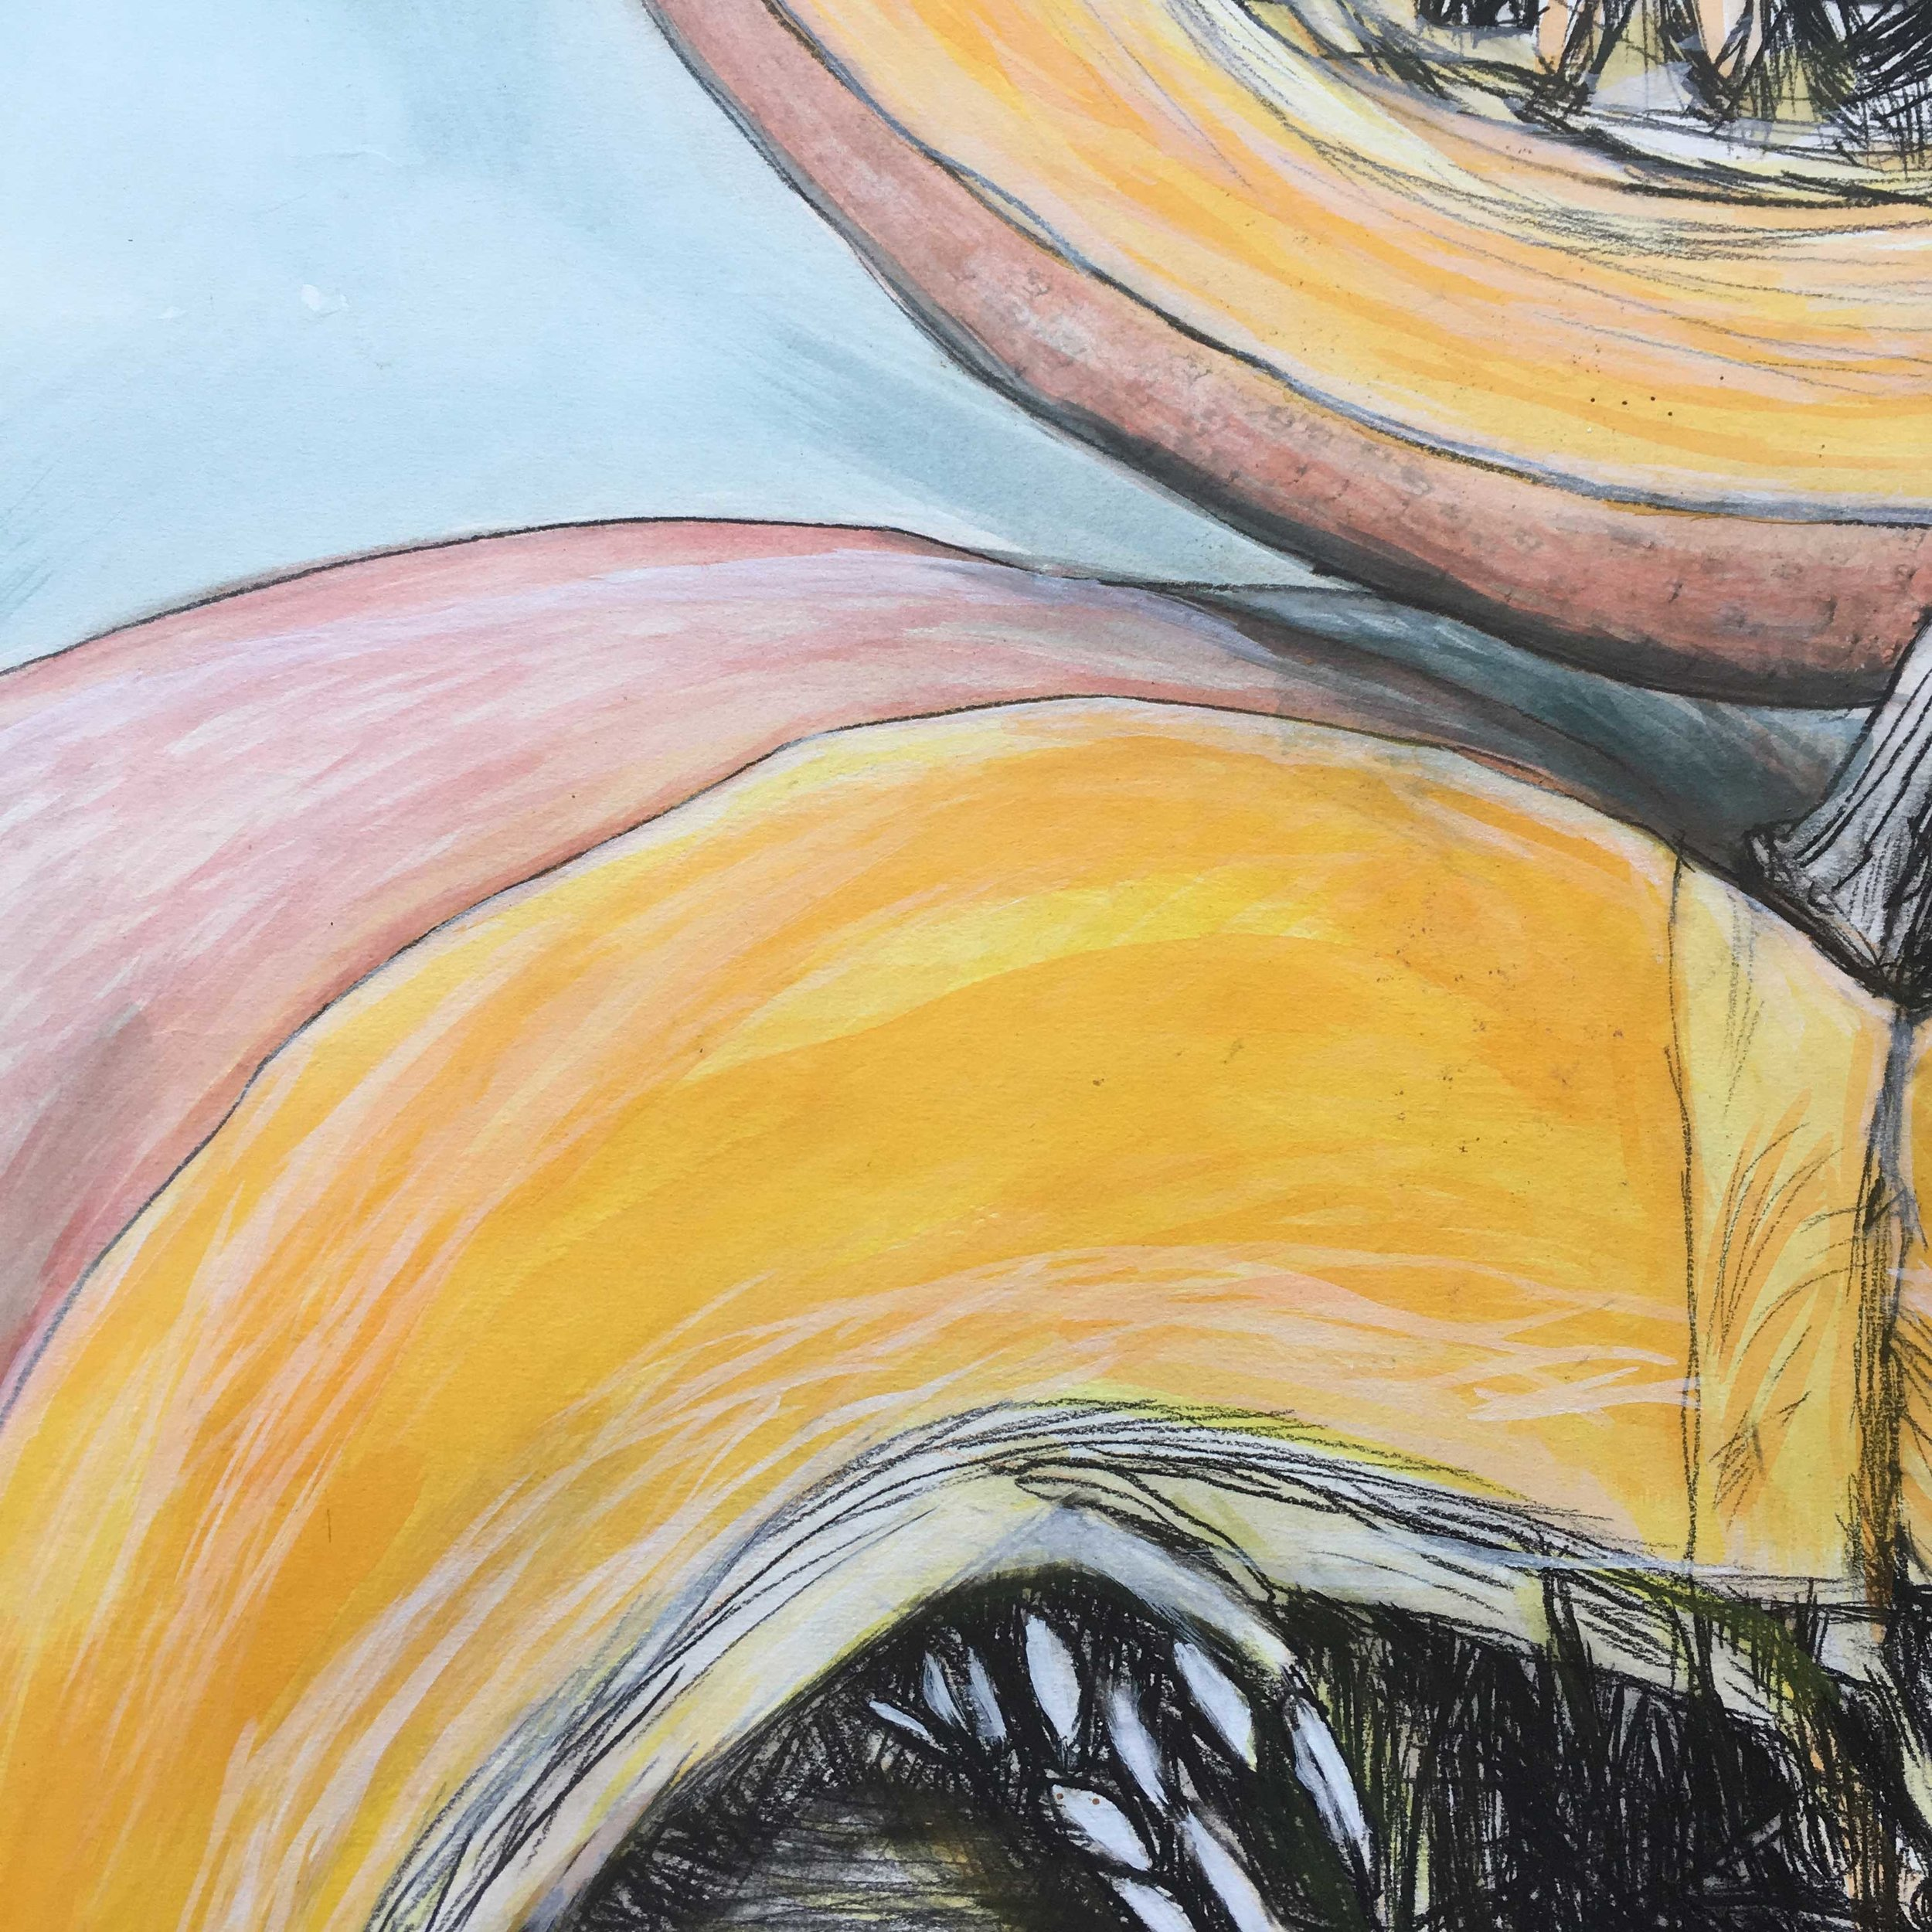 Pumpkin-drawing-detail-(6).jpg